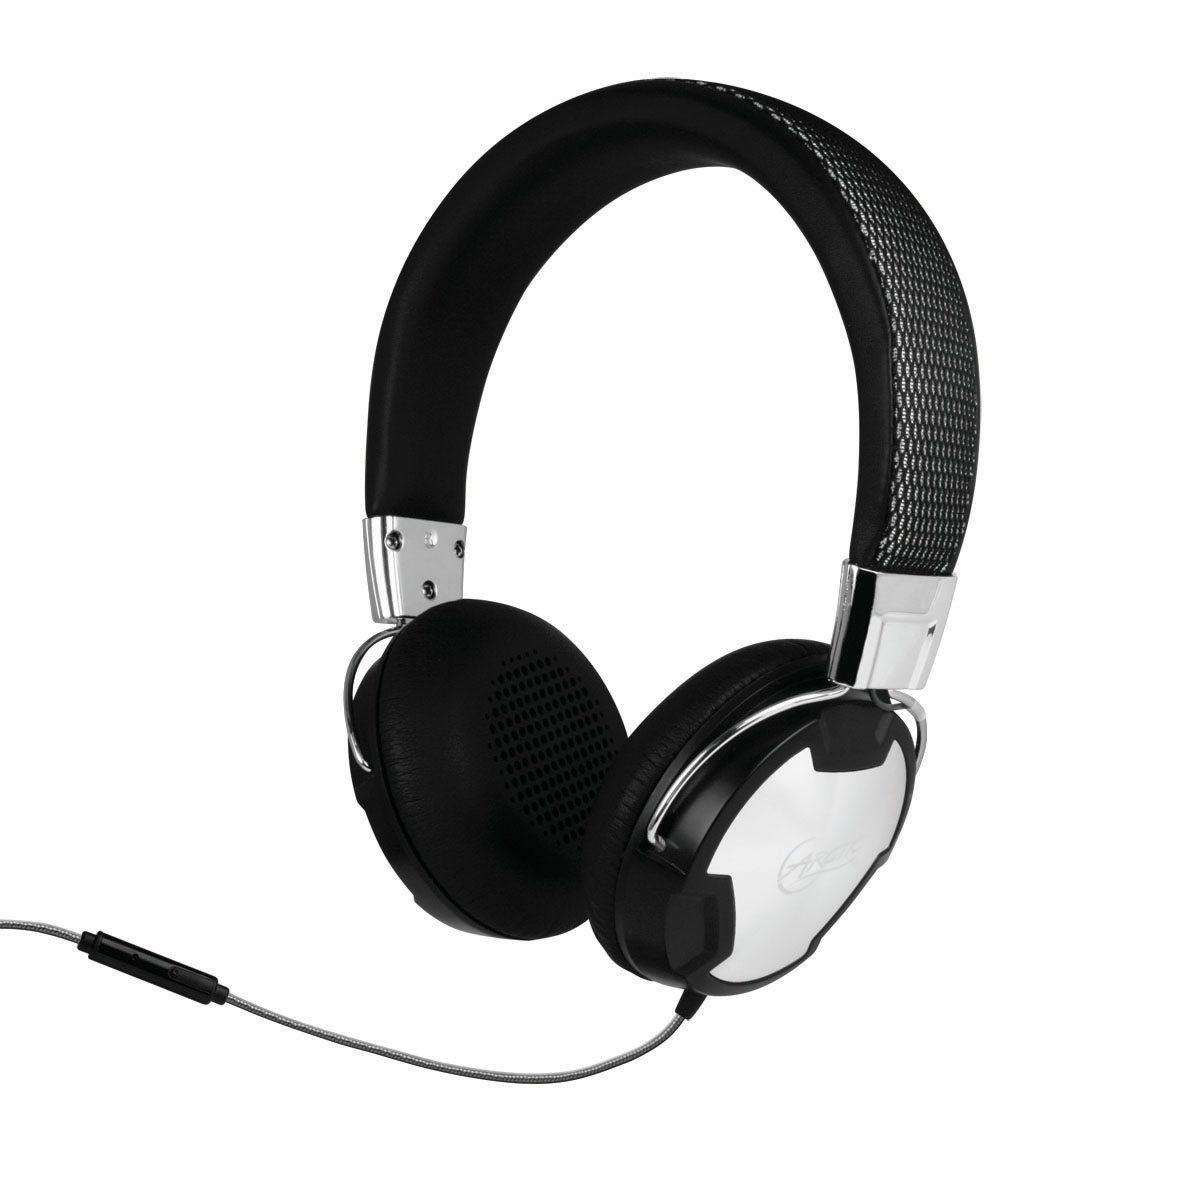 Sound P614 - Premium headphones with in-line microphone